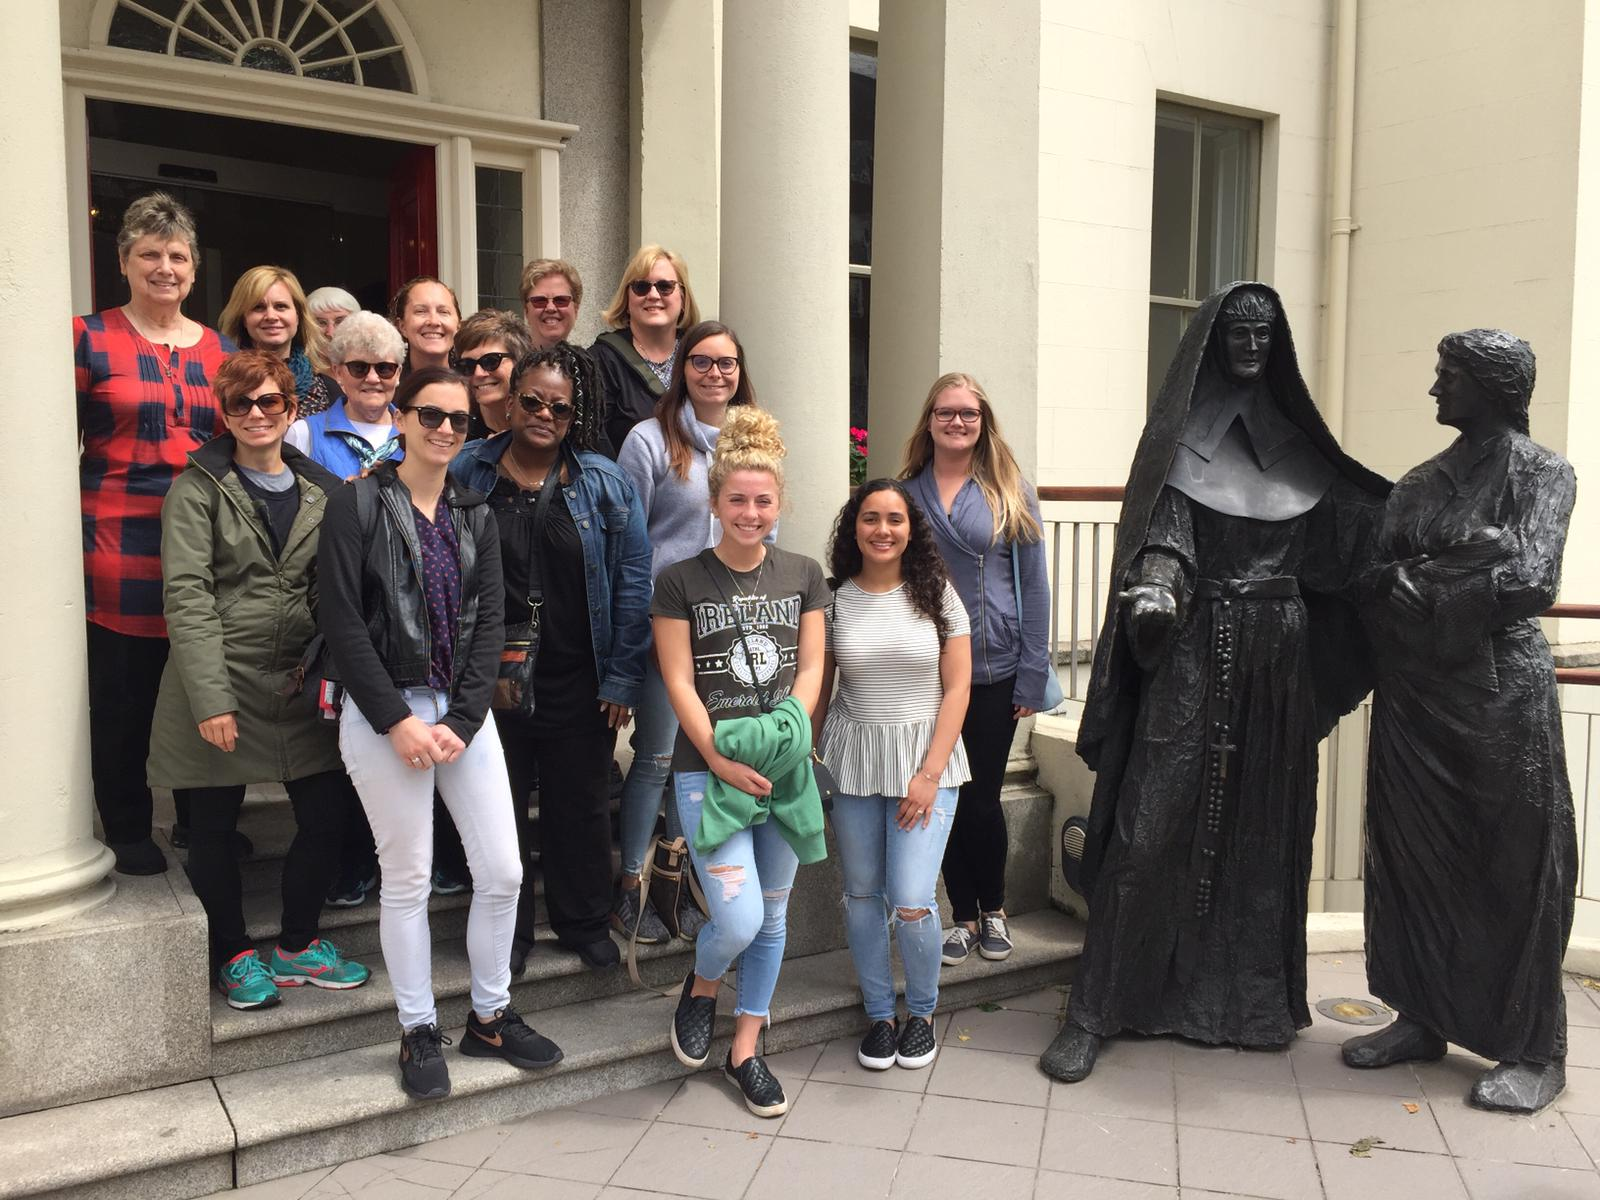 Detroit Mercy faculty, students and alumni visited Ireland and stopped at Mercy International, the home on Baggot Street built by Catherine McAuley to care for Dublin's poor.